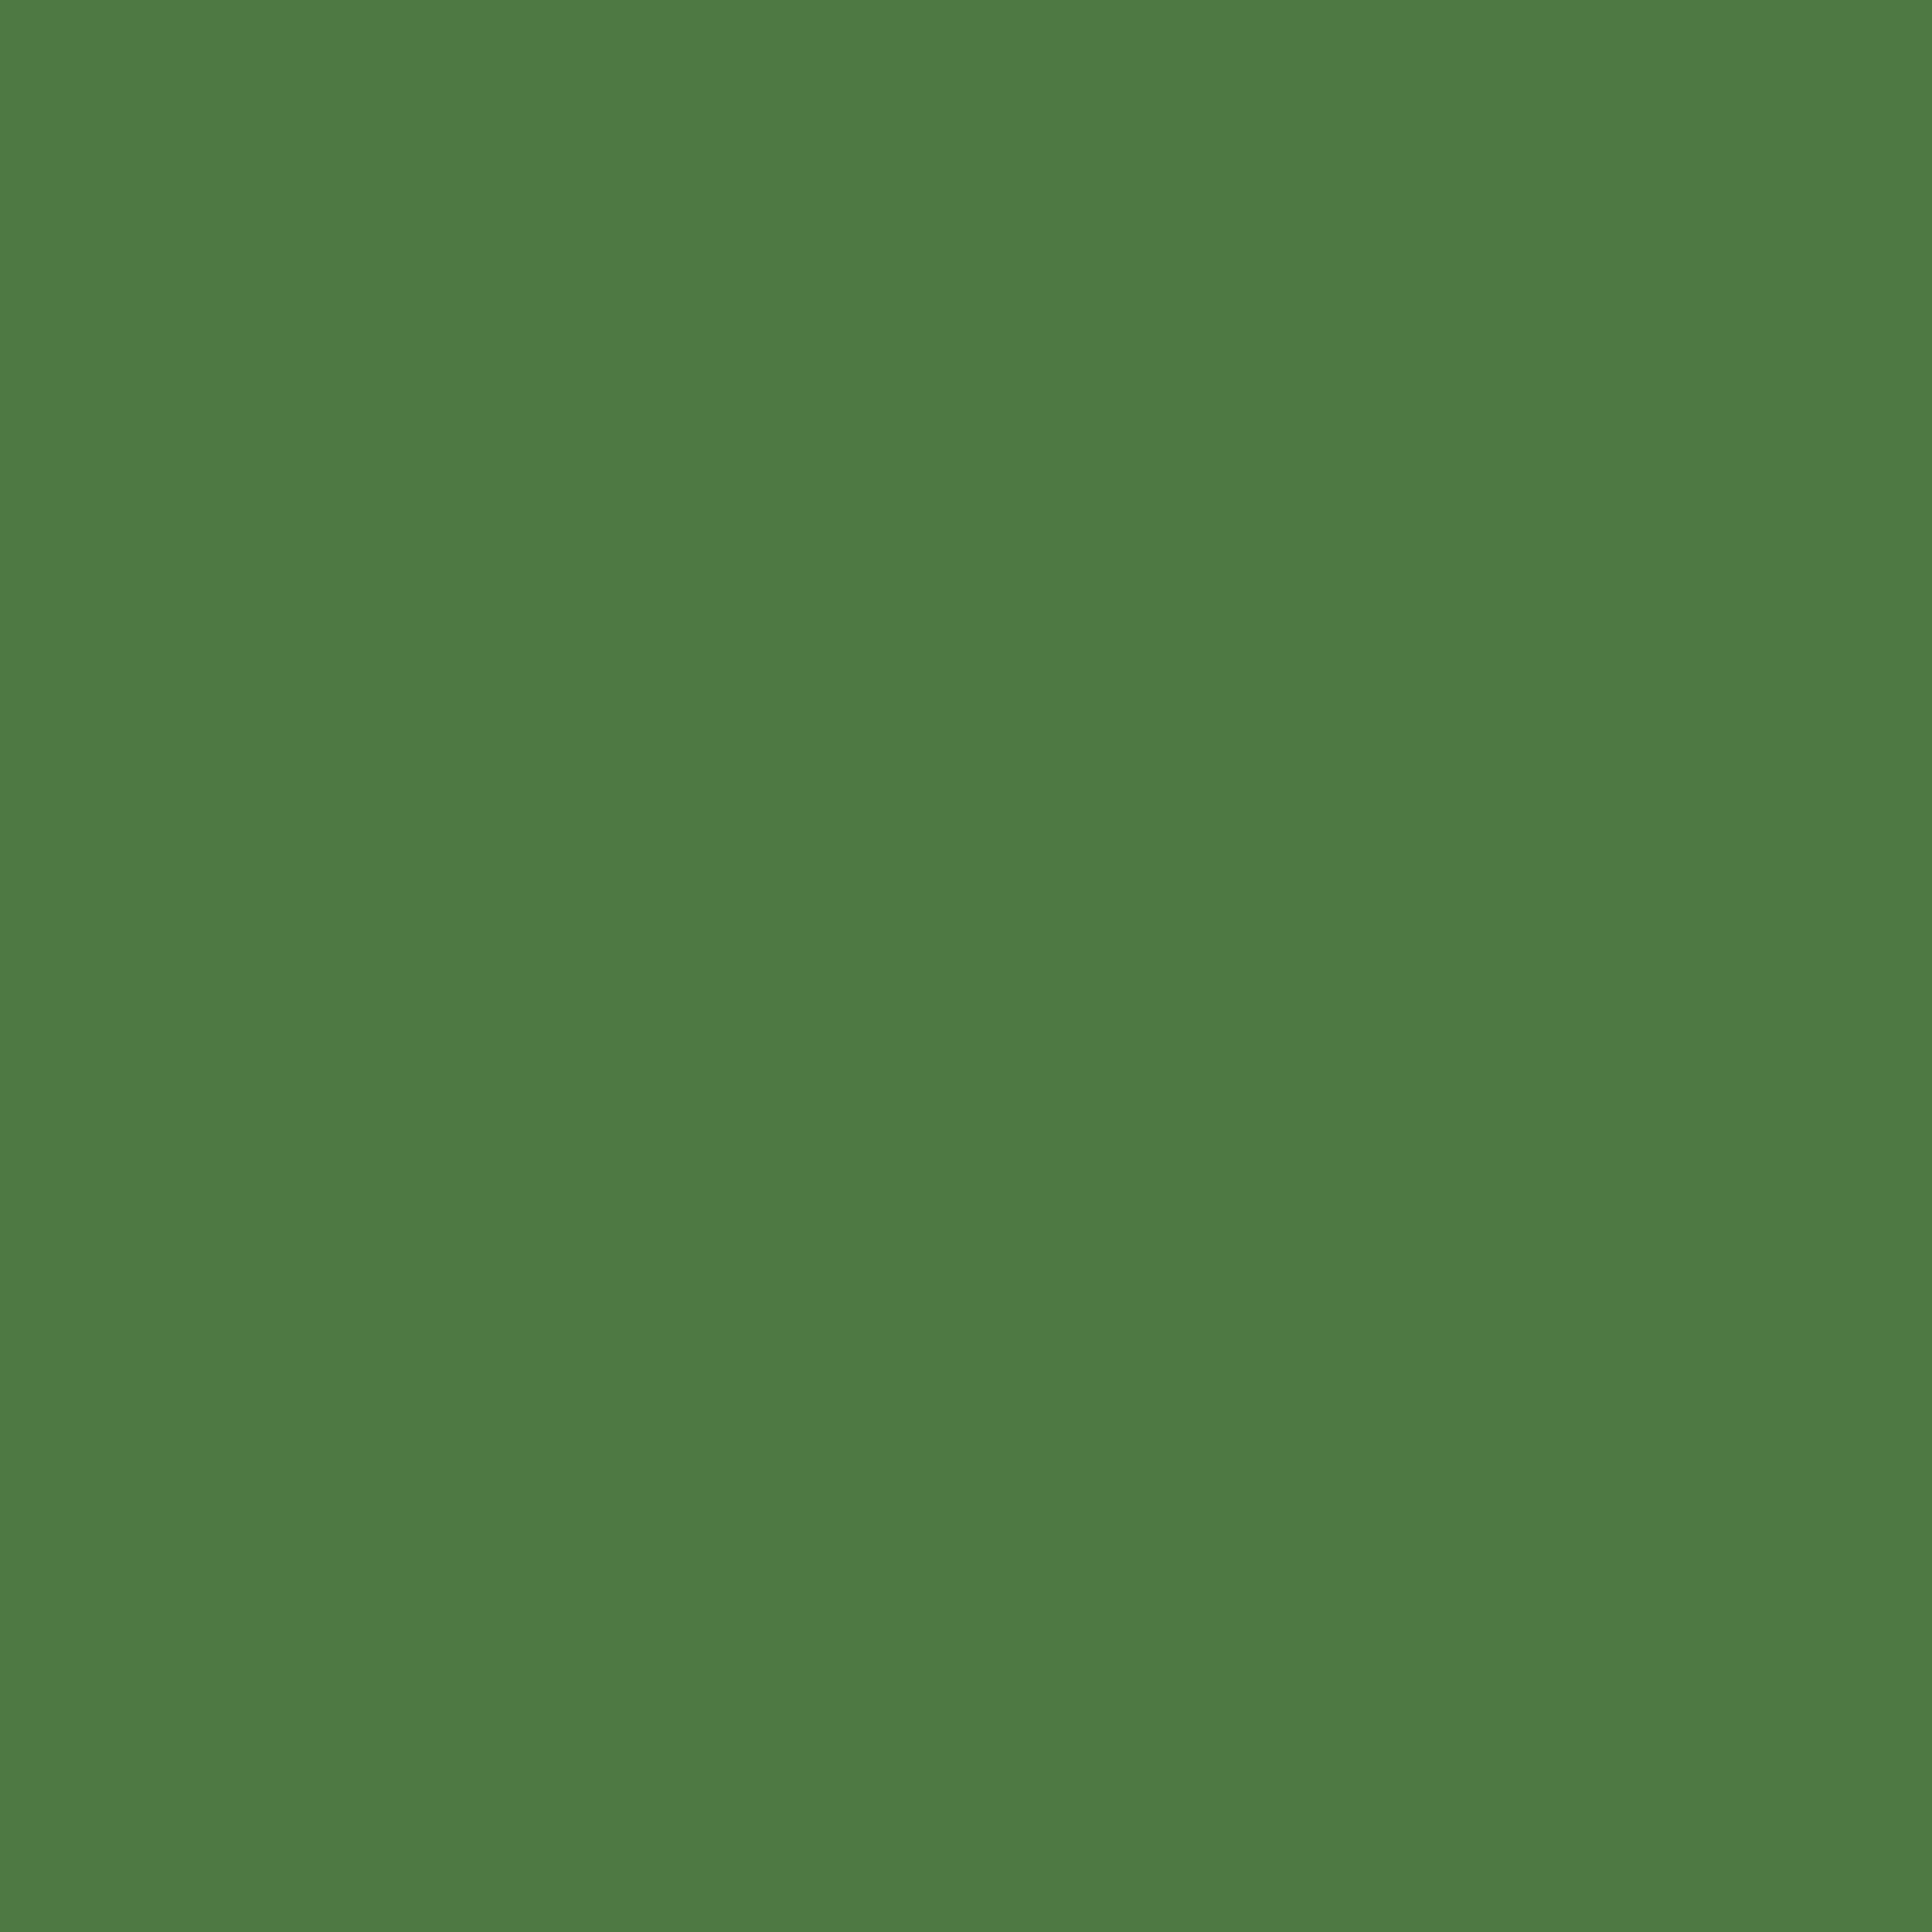 3600x3600 Fern Green Solid Color Background